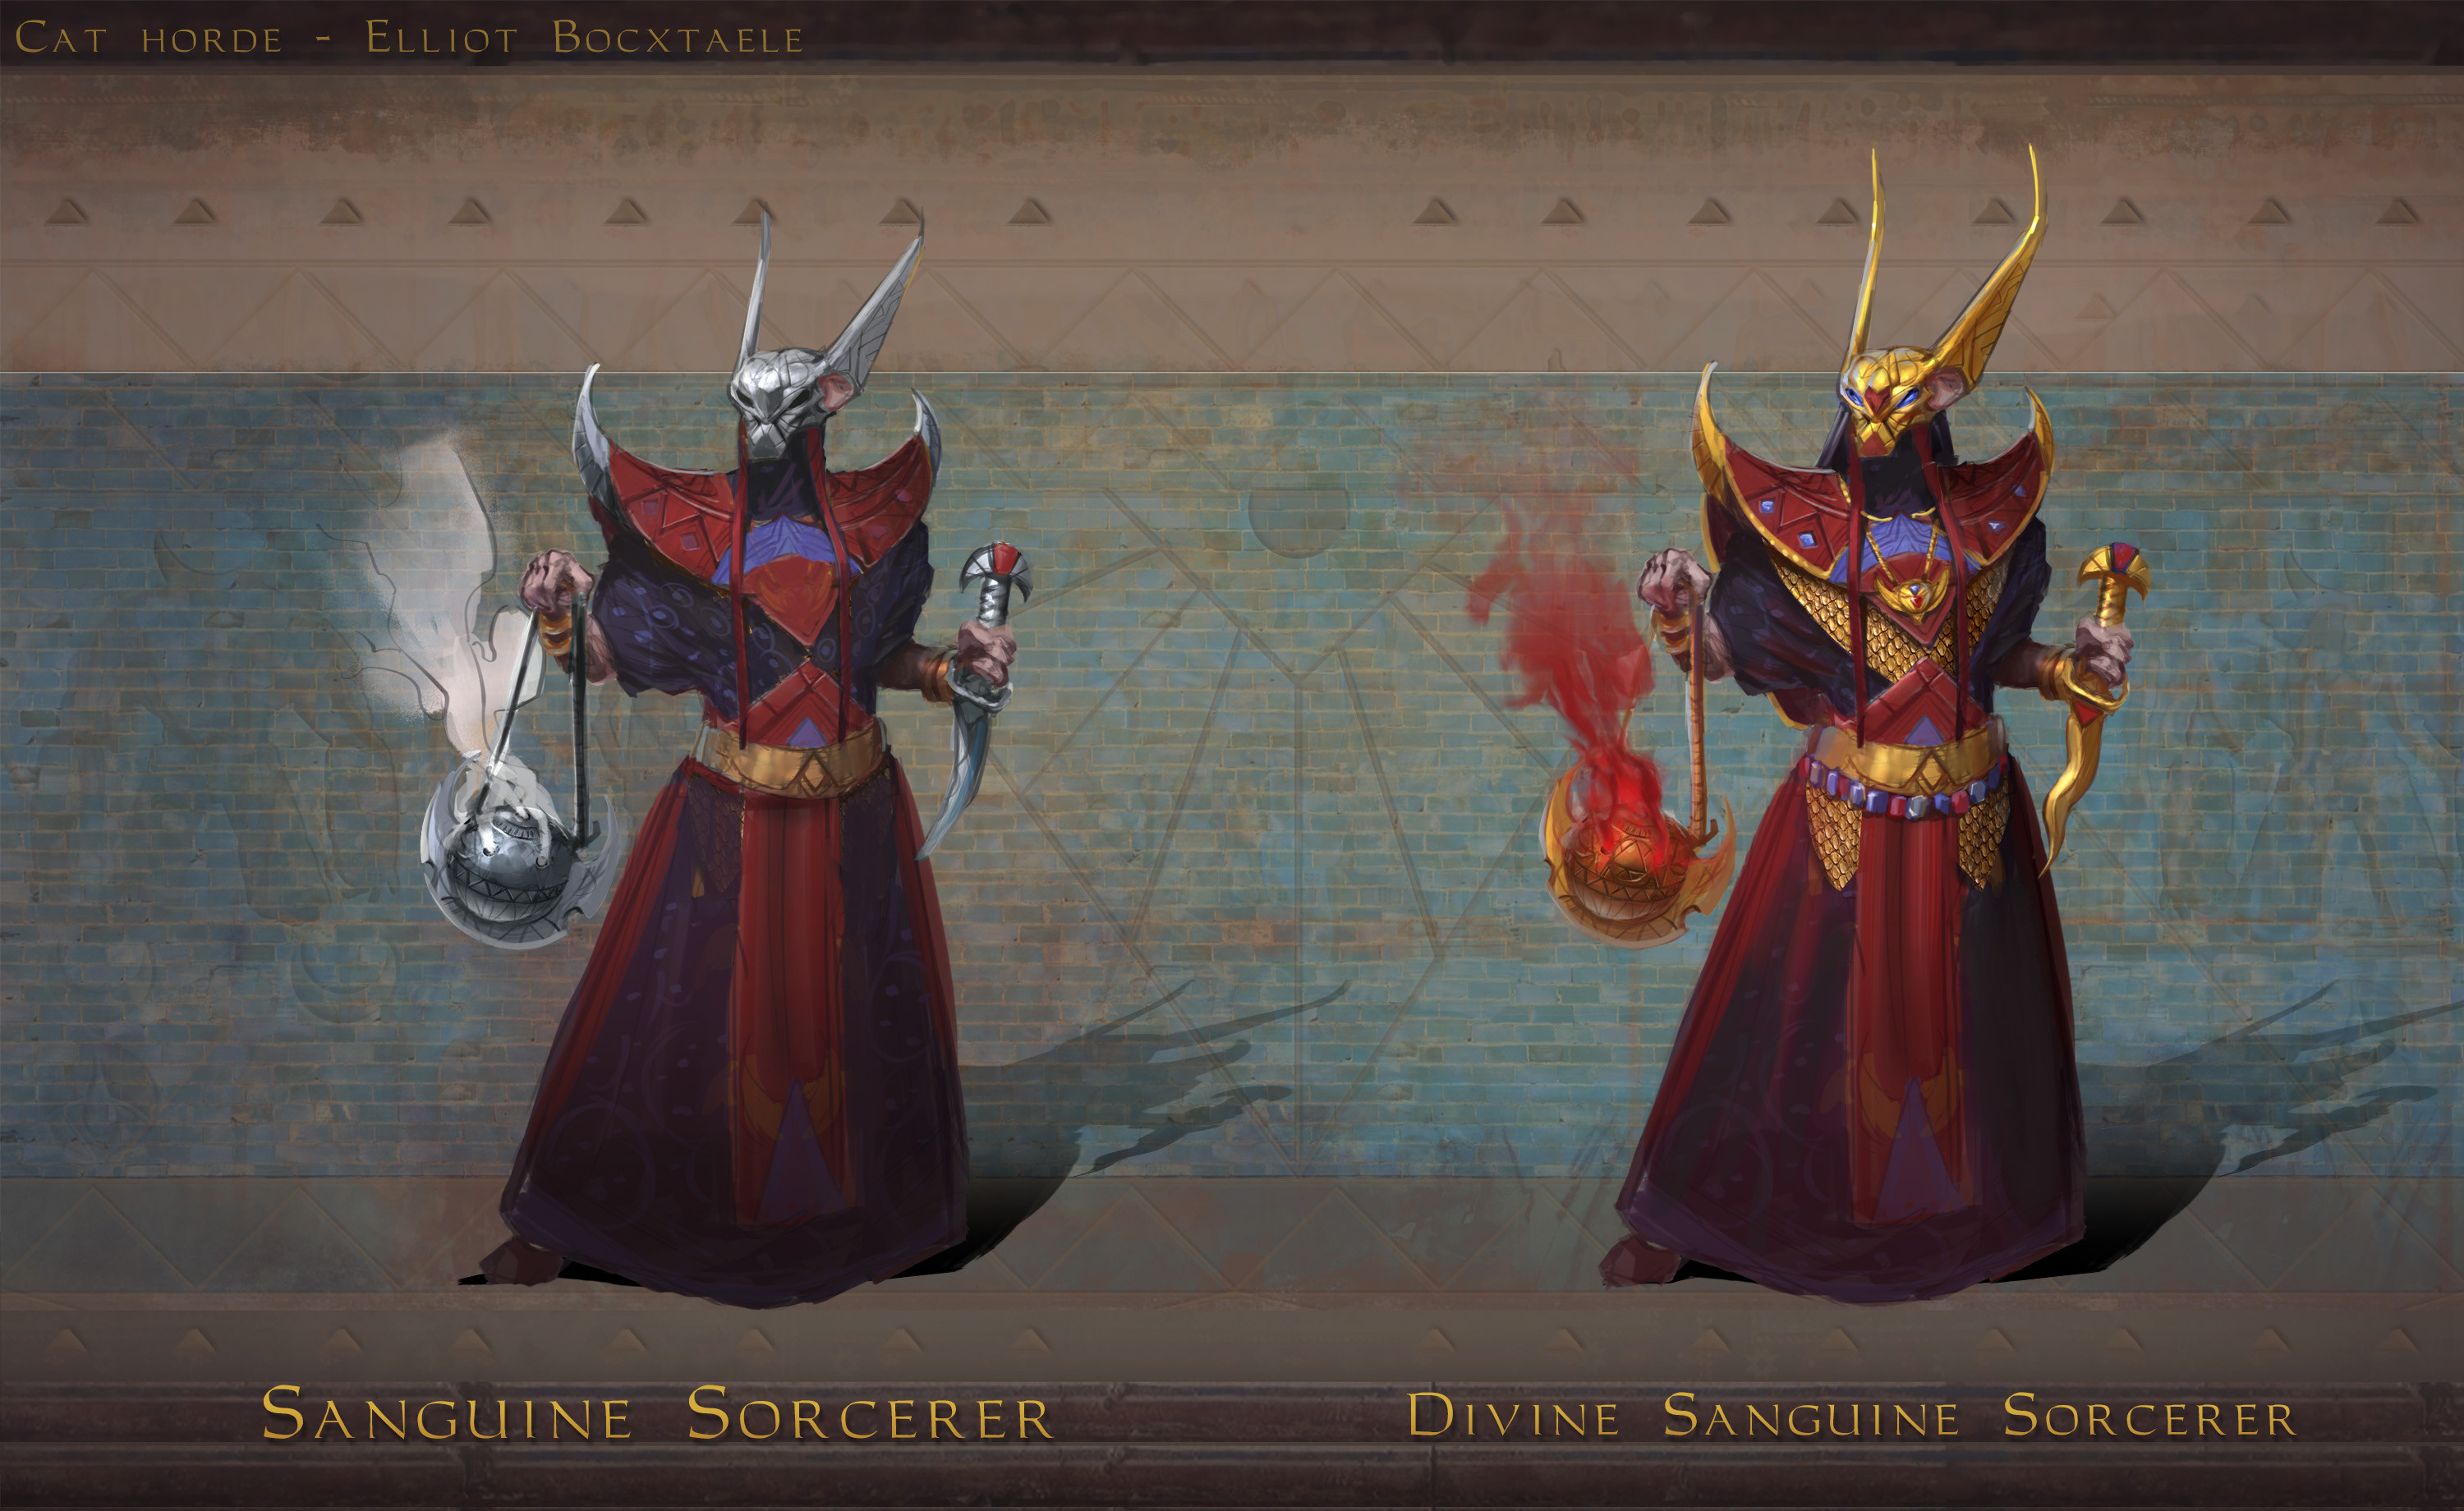 TIER 6 Sanguine sorcerer. They serve the cresent, the dark moon and ultimately themselves. Sanguine sorcerers are incredibly powerful magicians, conjurers and alchemists, known for their twisted and grotesque blood rituals. Their obscure cult is ...